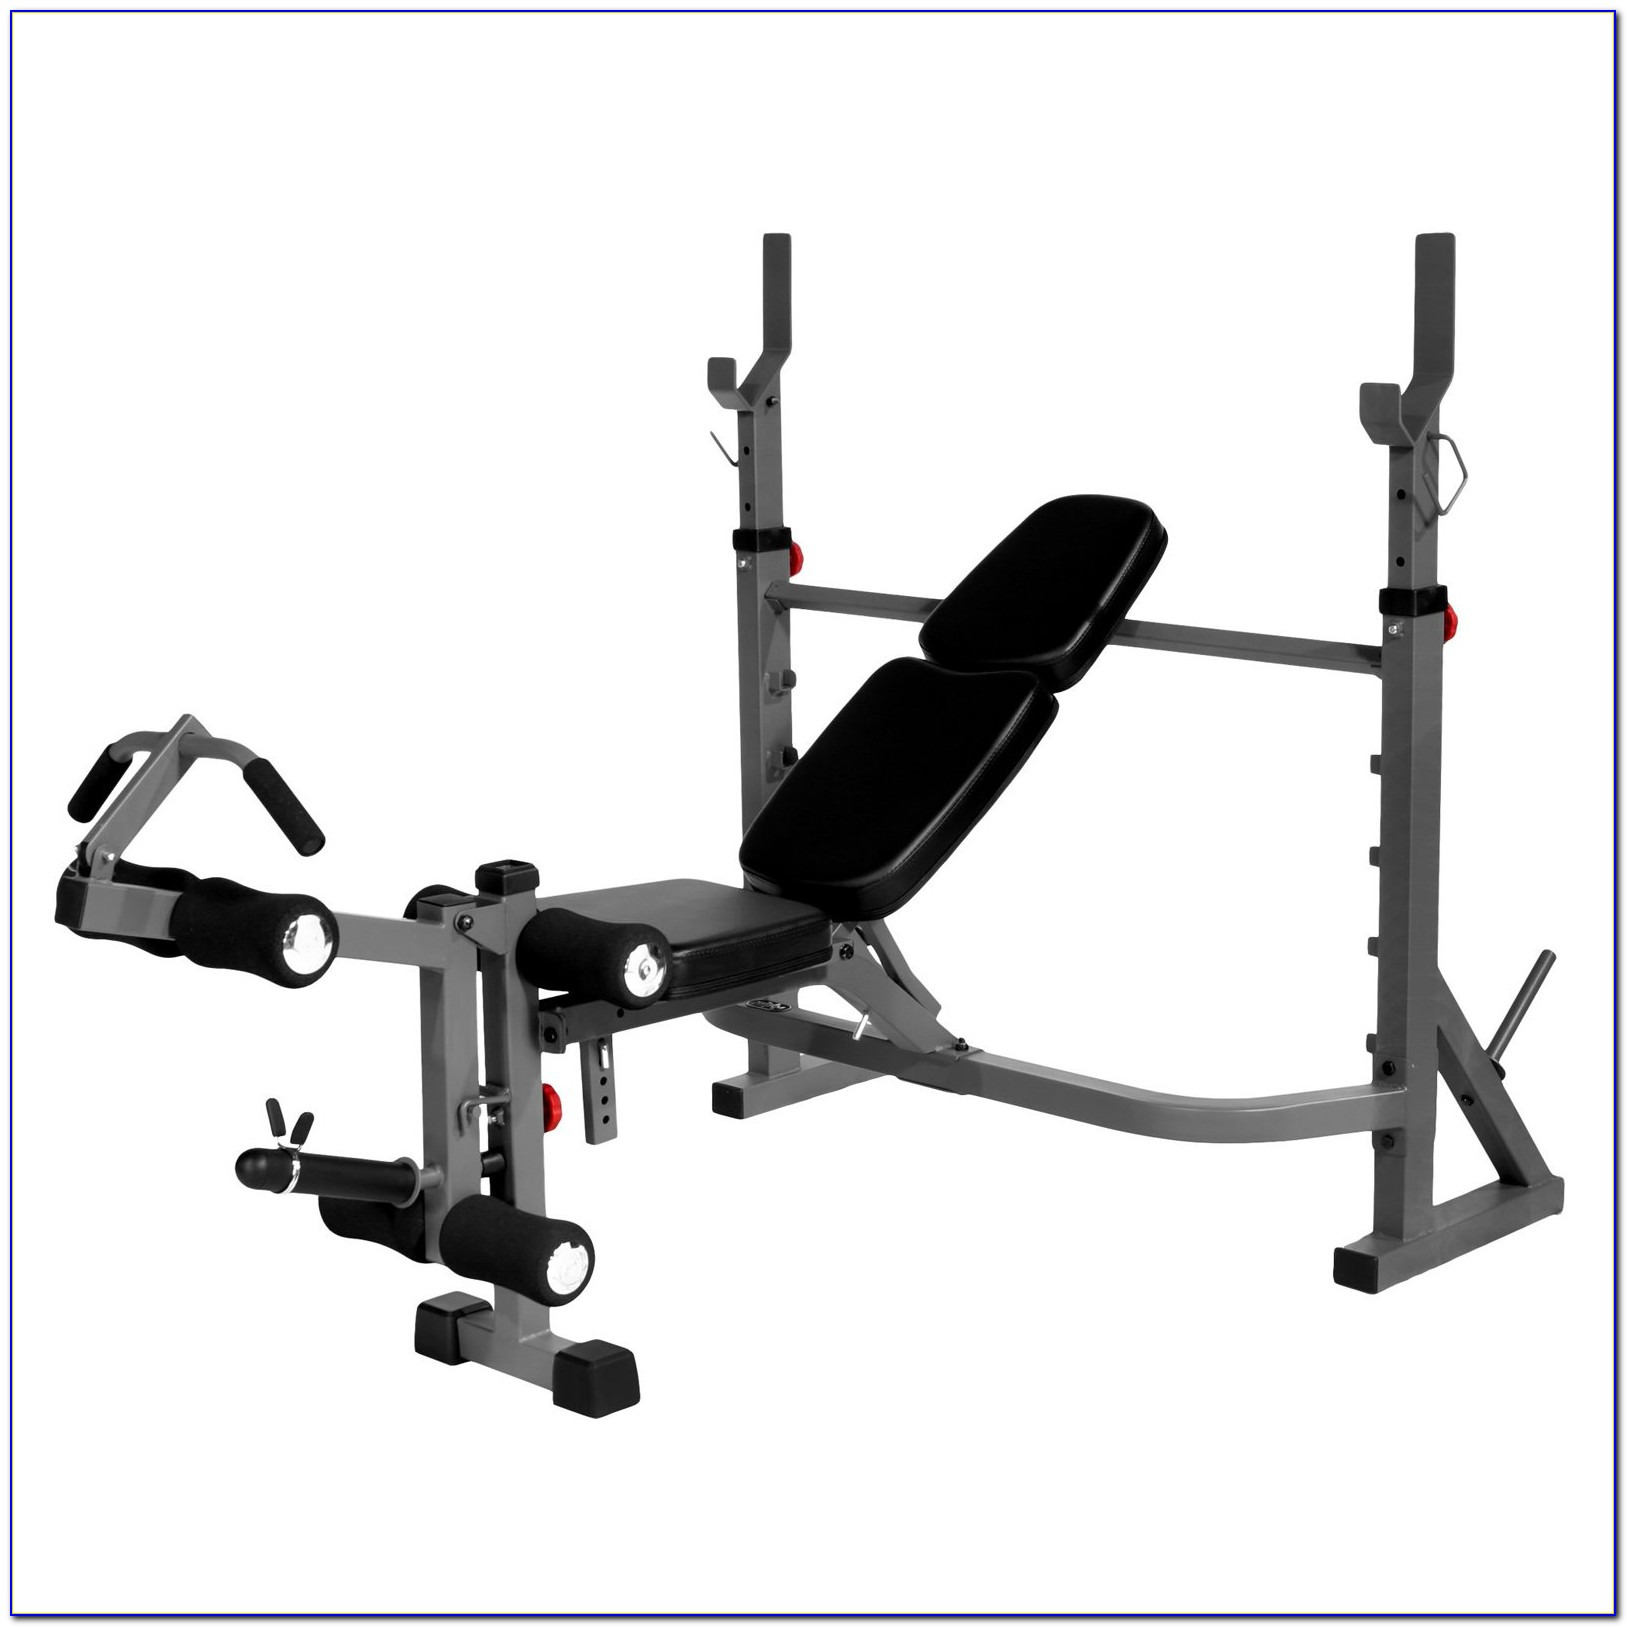 Weight Bench Leg Attachment Exercises